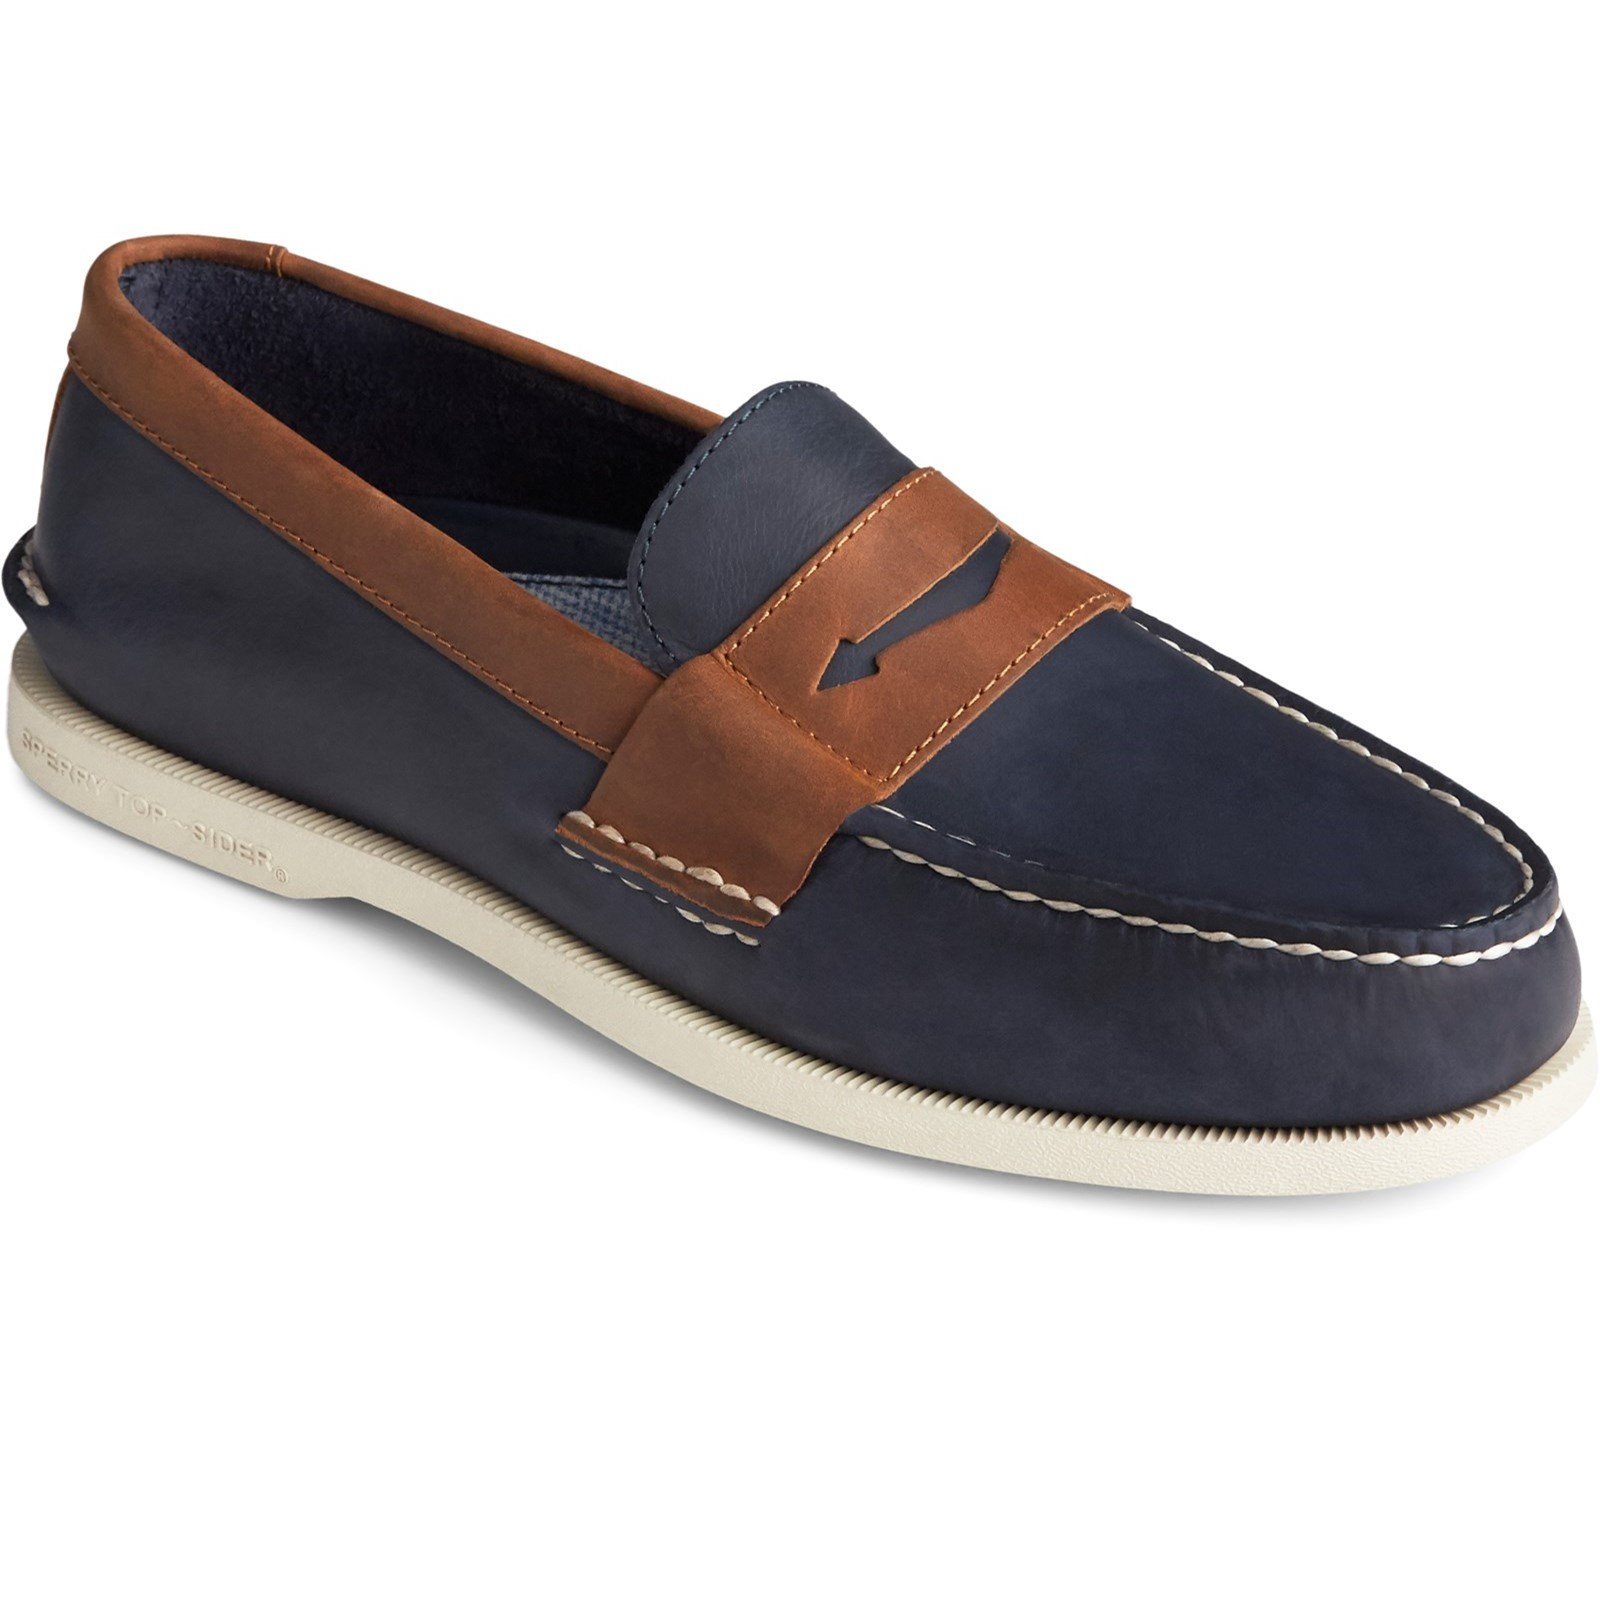 Sperry Men's Authentic Original Penny Loafer Various Colours 32438 - Navy/Sonora 7